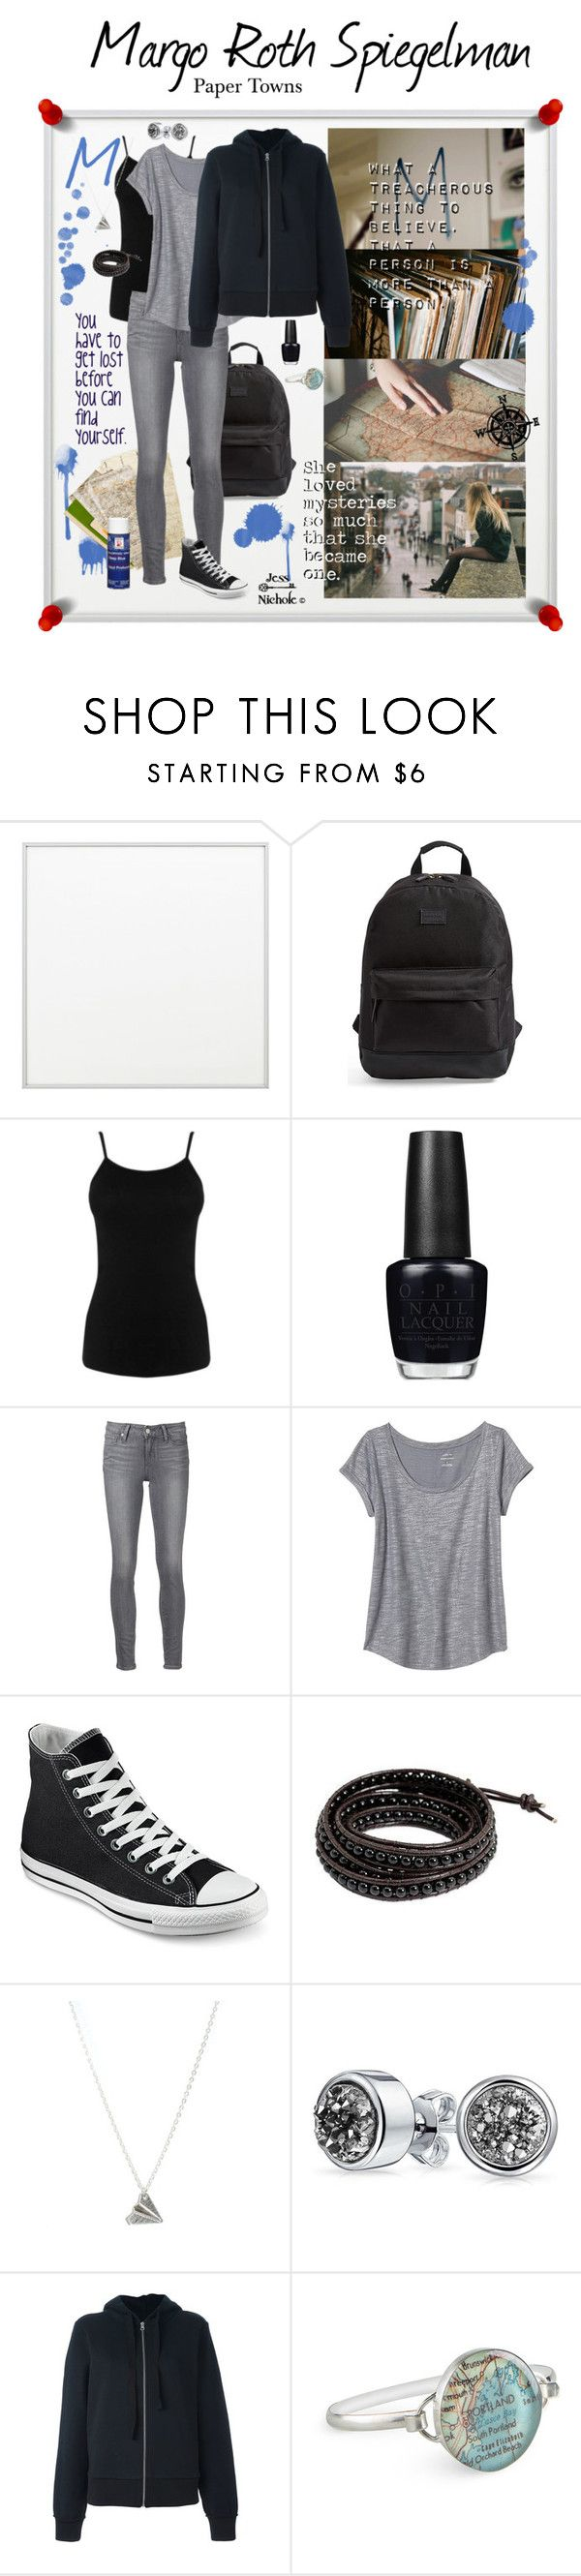 """Paper Towns: Margo Roth Spiegelman"" by jess-nichole ❤ liked on Polyvore featuring By Lassen, Rip Curl, Warehouse, OPI, Paige Denim, Banana Republic, Converse, NOVICA, Bling Jewelry and MM6 Maison Margiela"